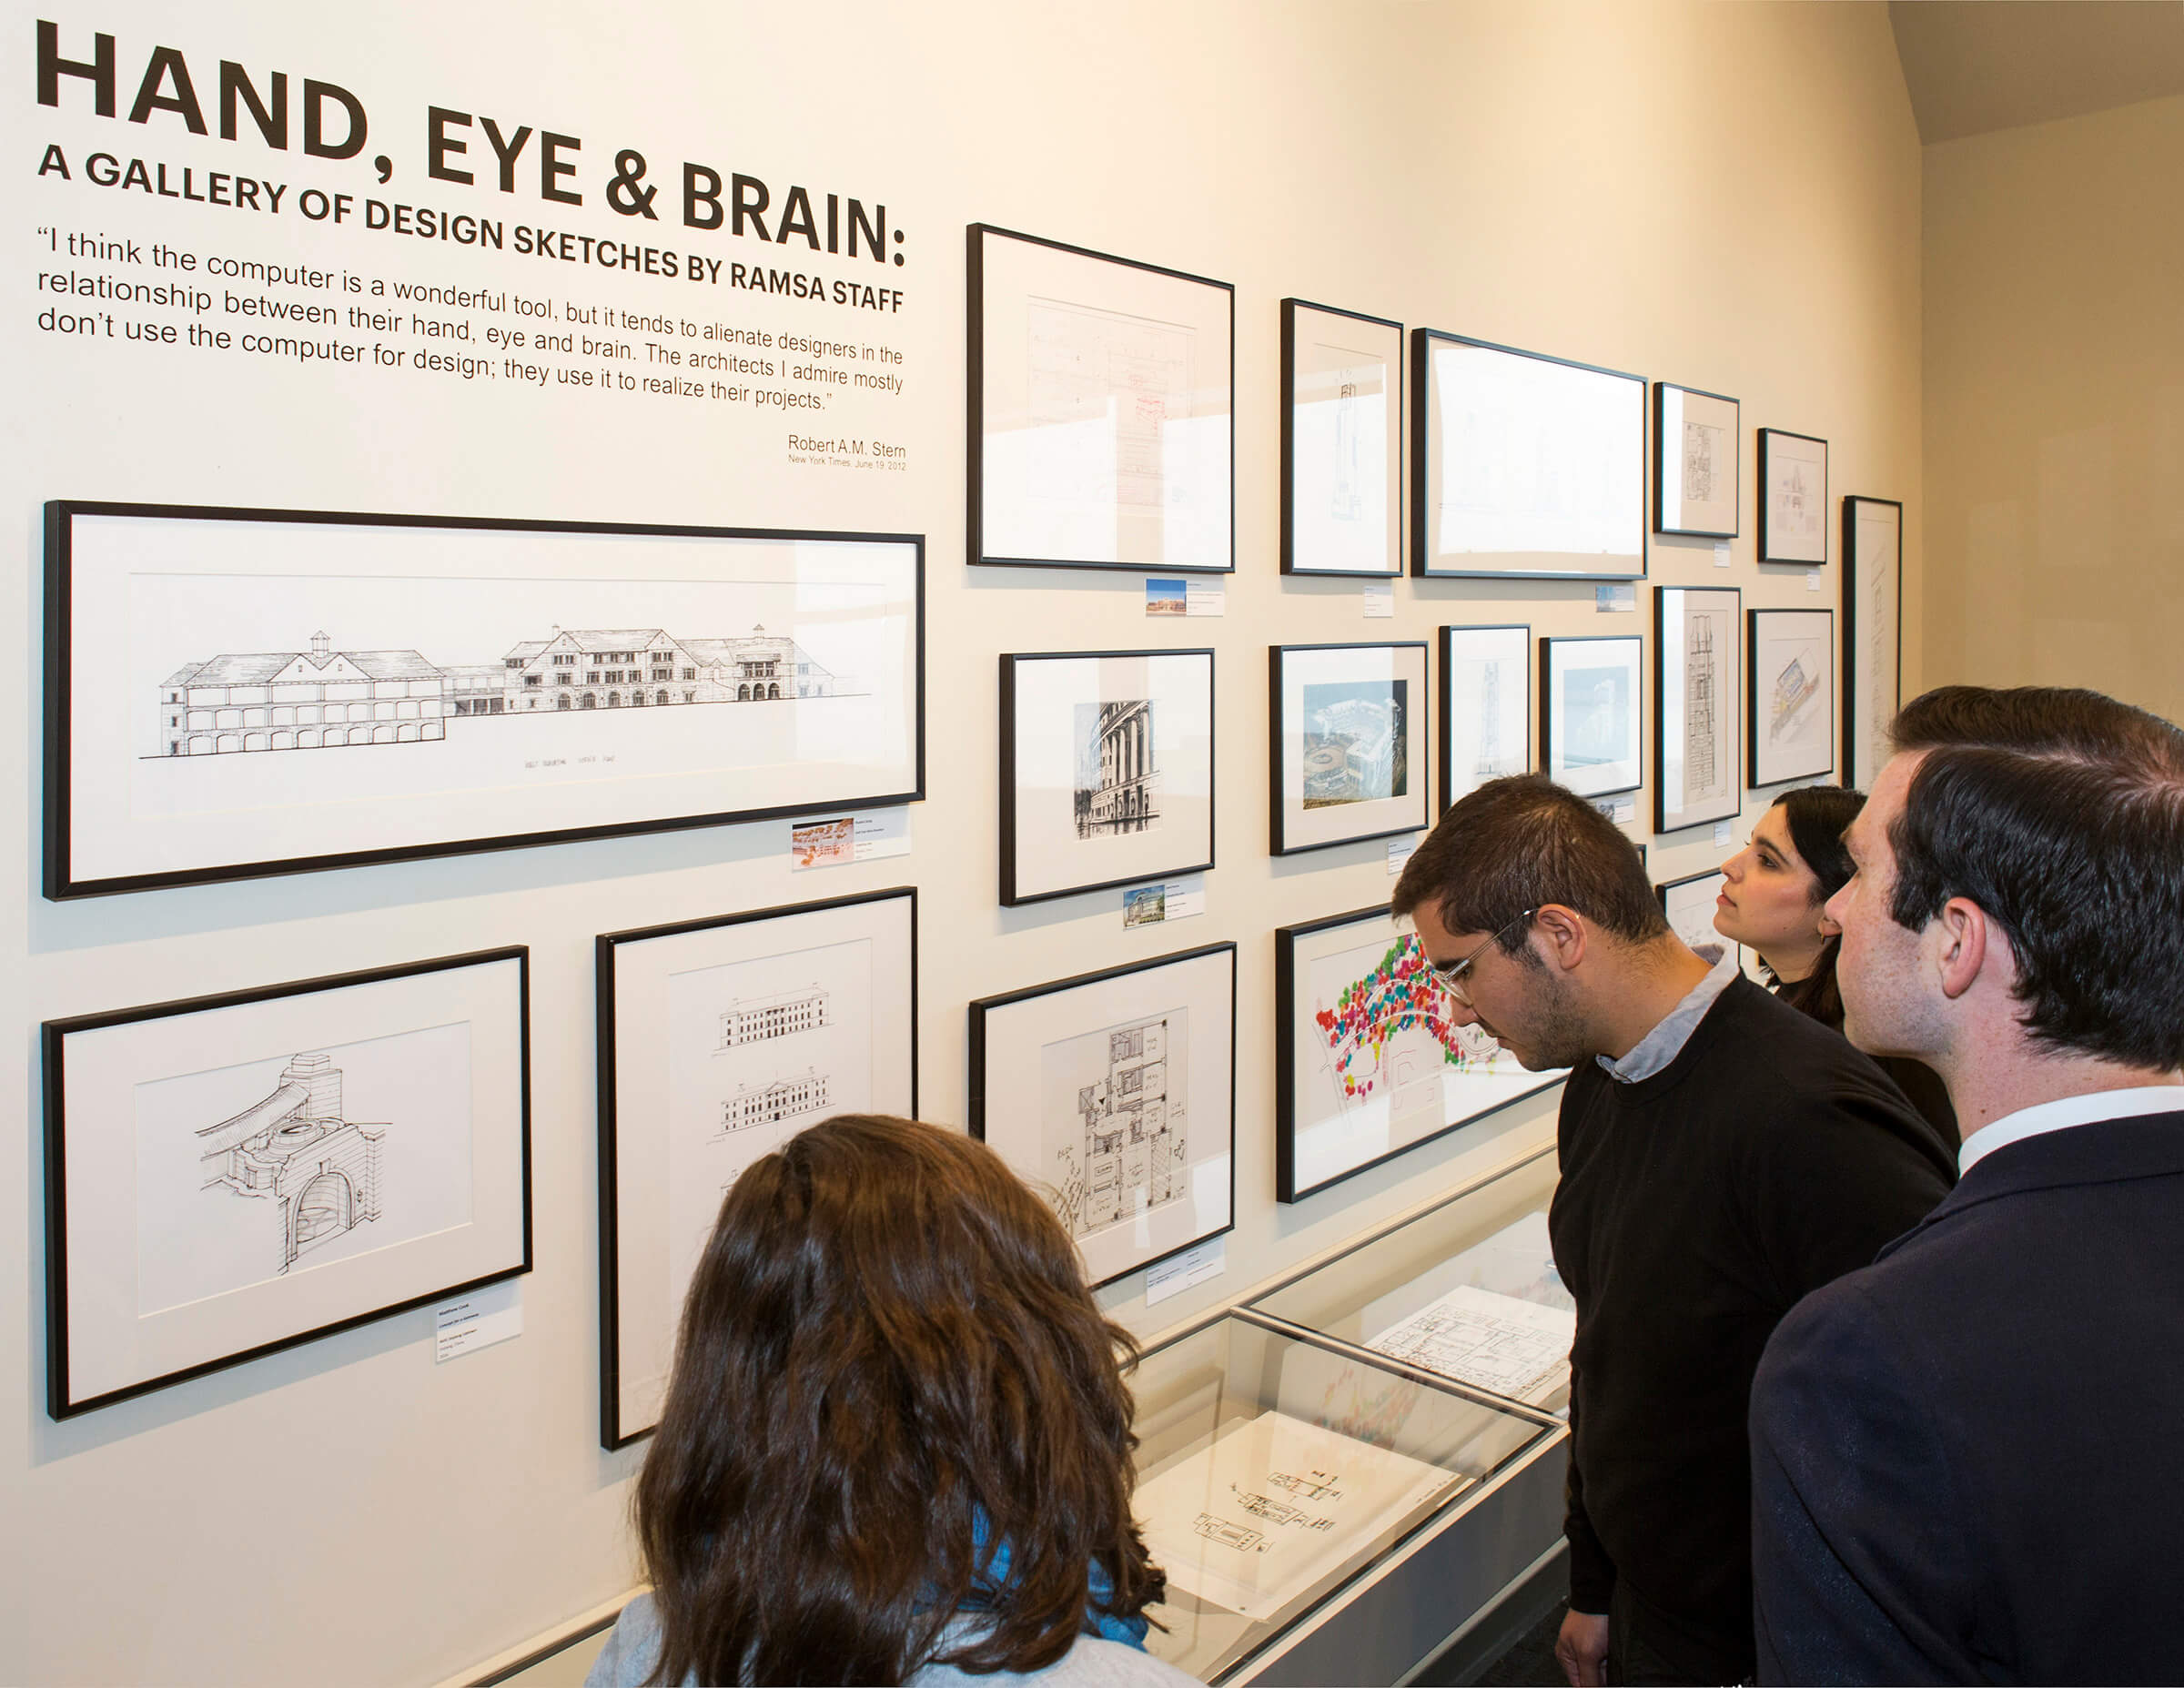 """Hand, Eye & Brain: A Gallery of Design Sketches by RAMSA Staff"" Opens"